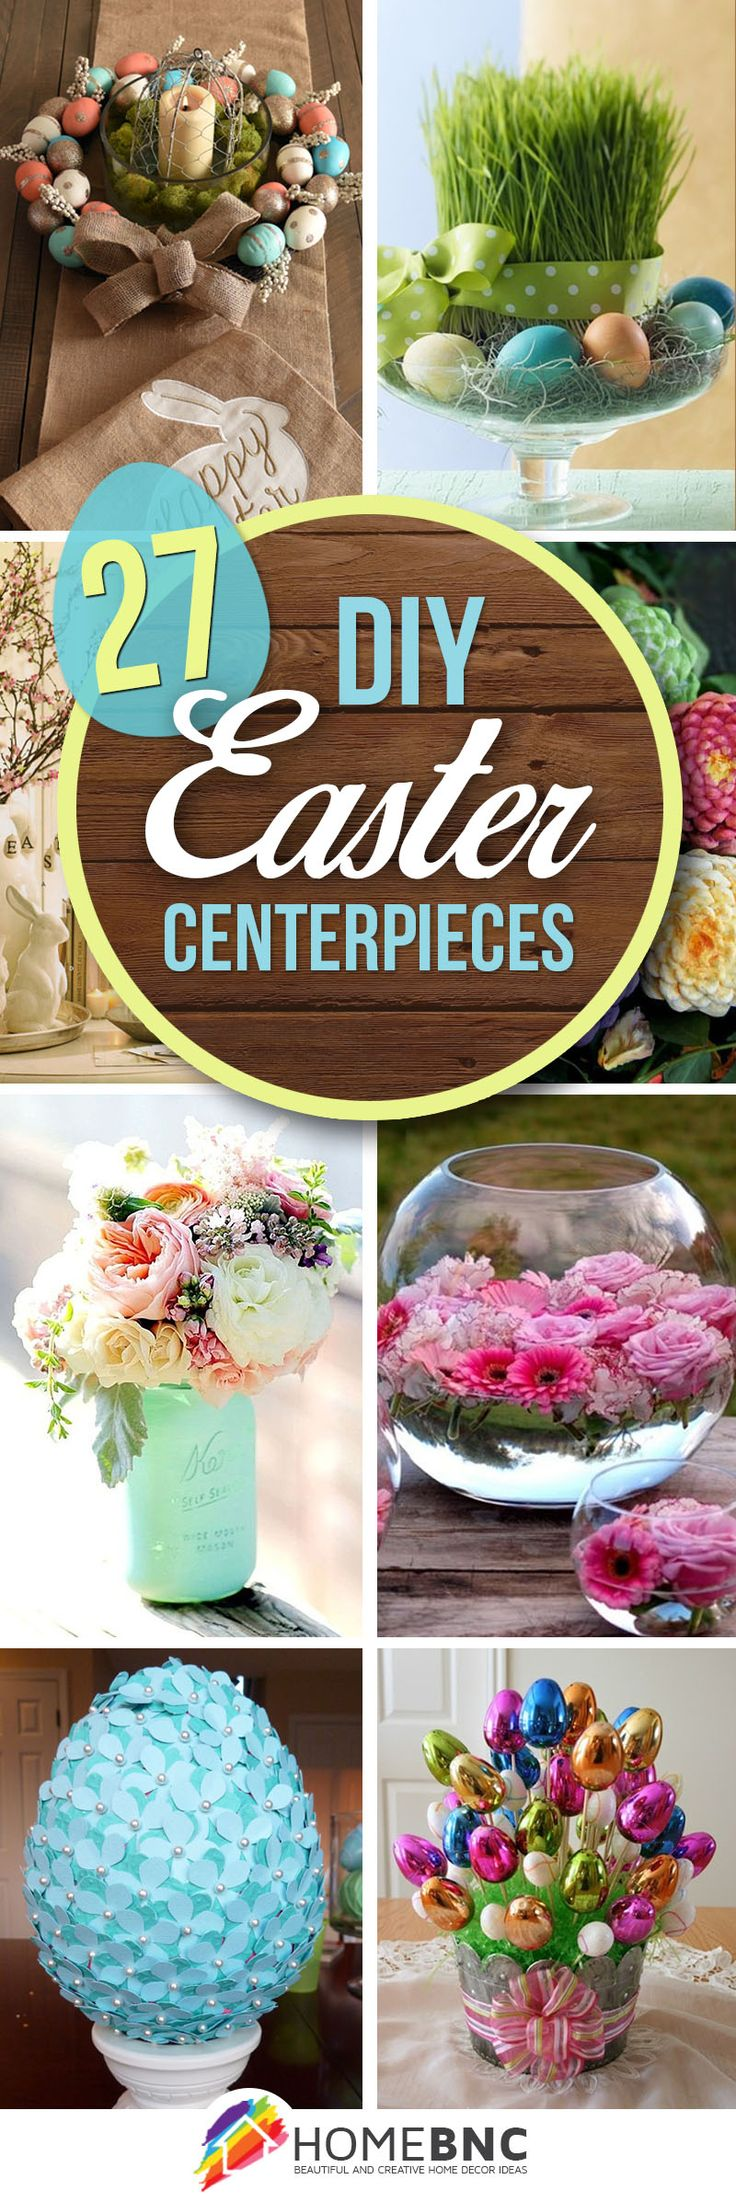 27 Surprisingly Chic DIY Easter Centerpieces You Must See 0 BY HOMEBNC-From wooden baskets to woven textiles, there's no shortage of ways to welcome spring into your home. Family and guests alike will no doubt be charmed by these 27 DIY Easter centerpiece decorations, making this Easter an affair to remember.